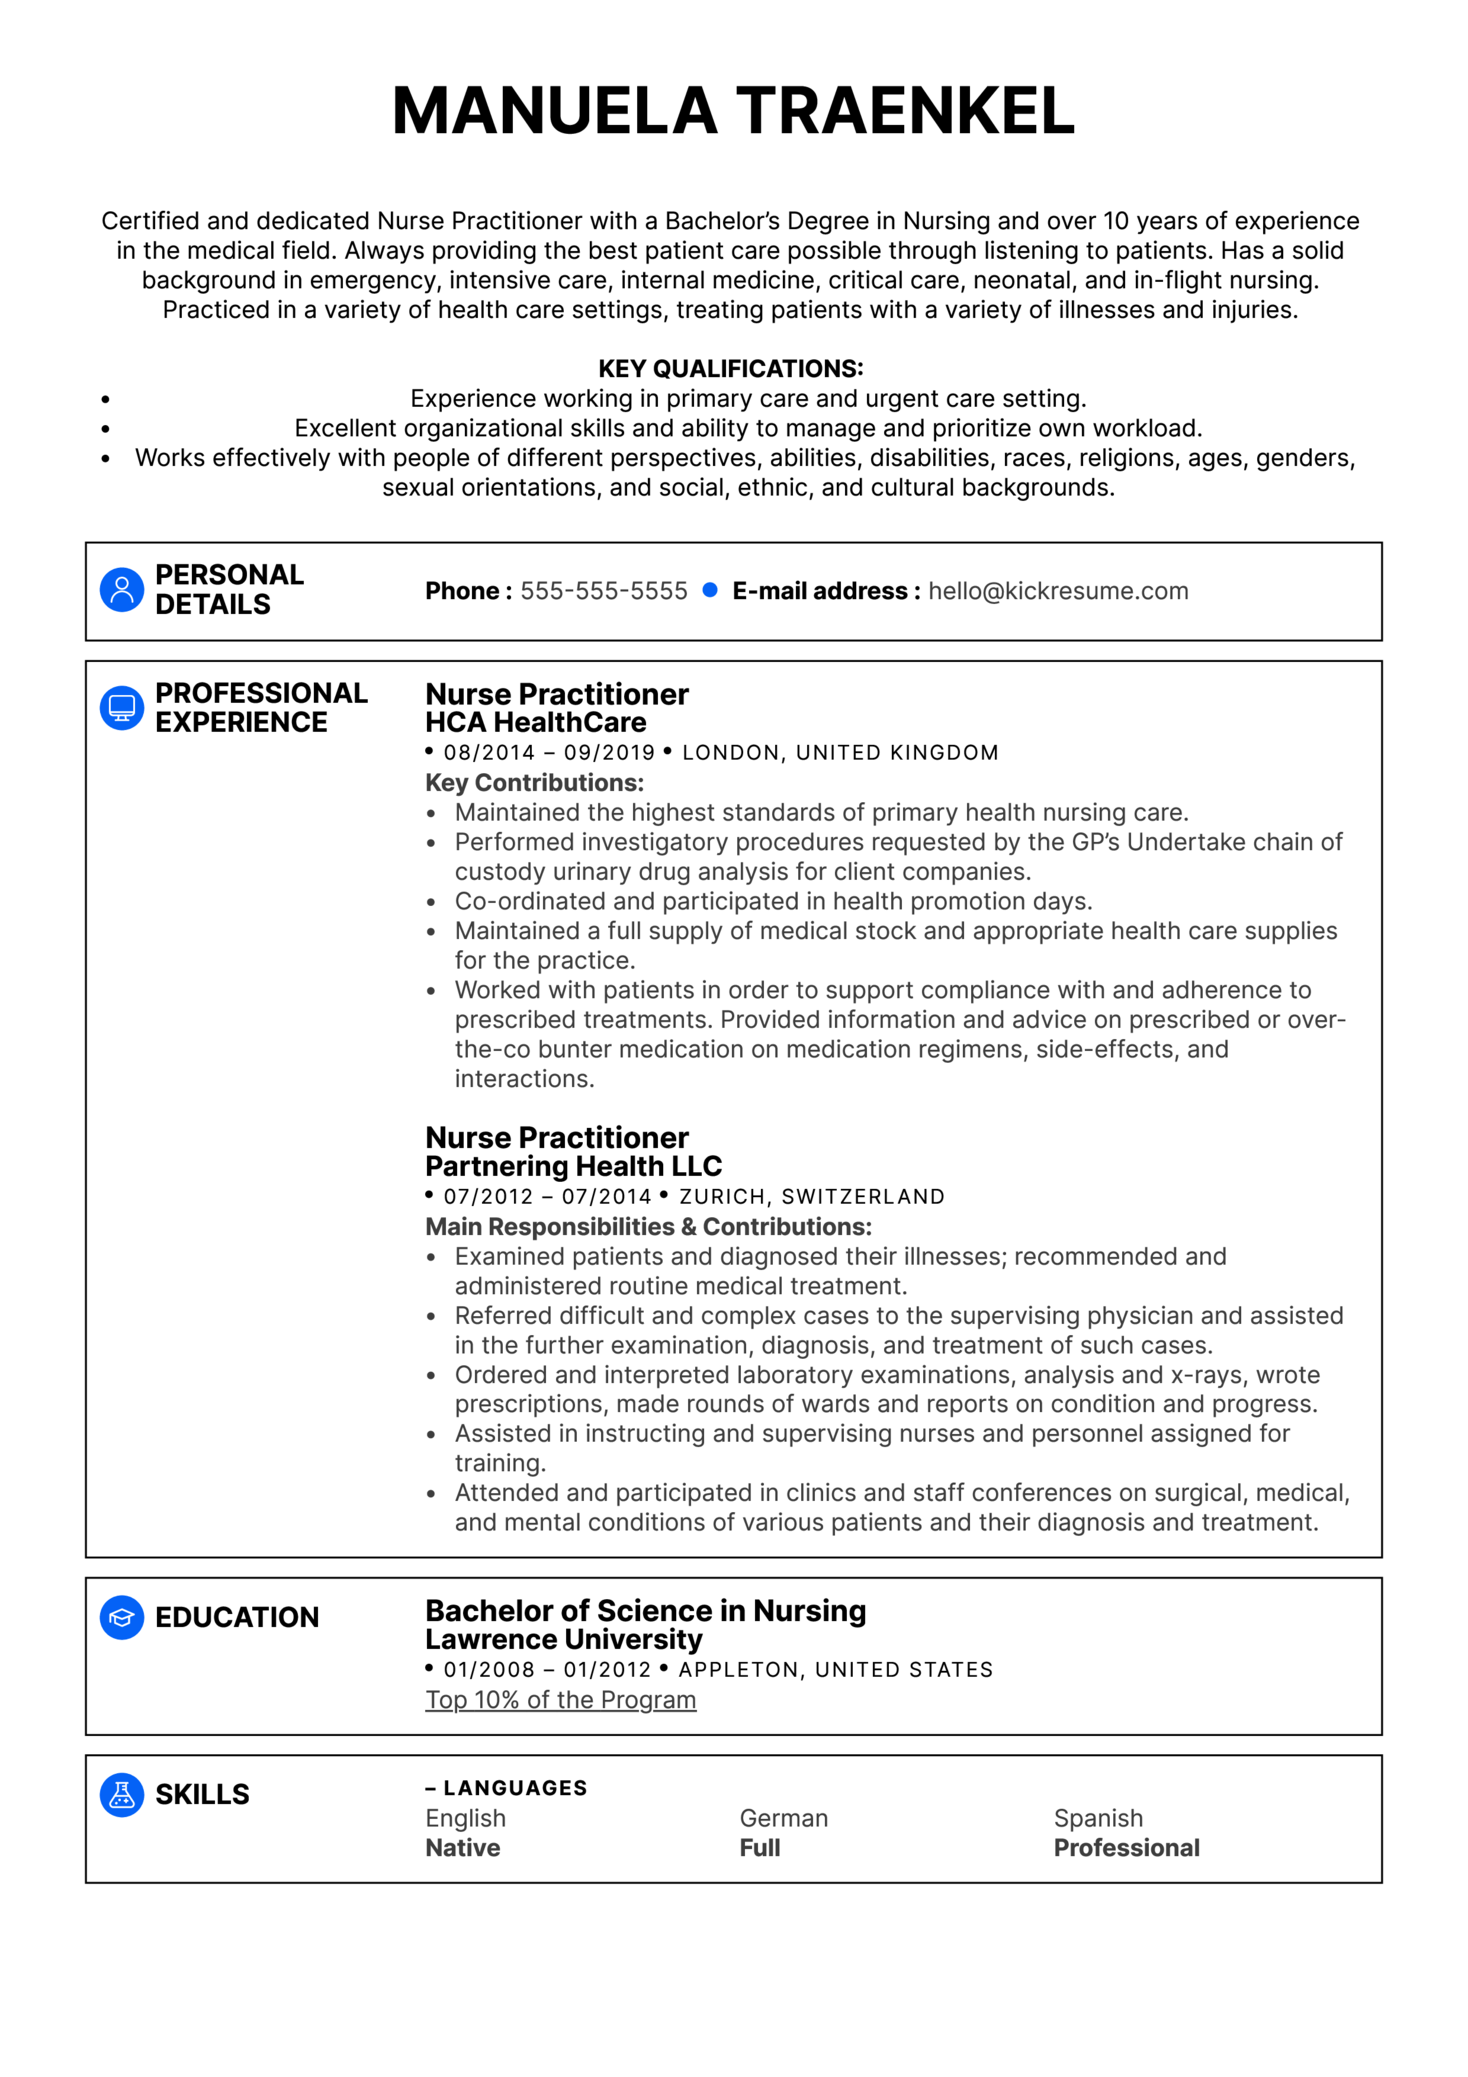 Nurse Practitioner Resume Example Kickresume